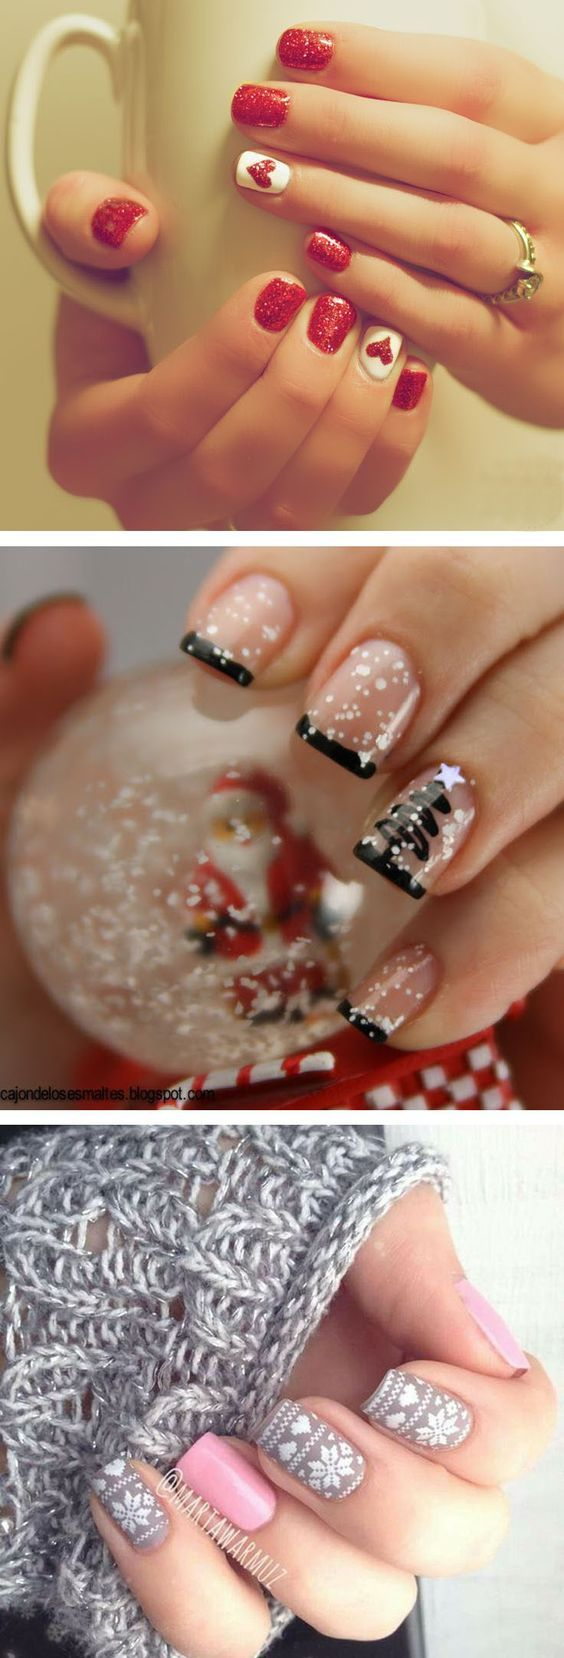 36 sparkling nail designs for christmas party manicure hair 36 sparkling nail designs for christmas party prinsesfo Gallery